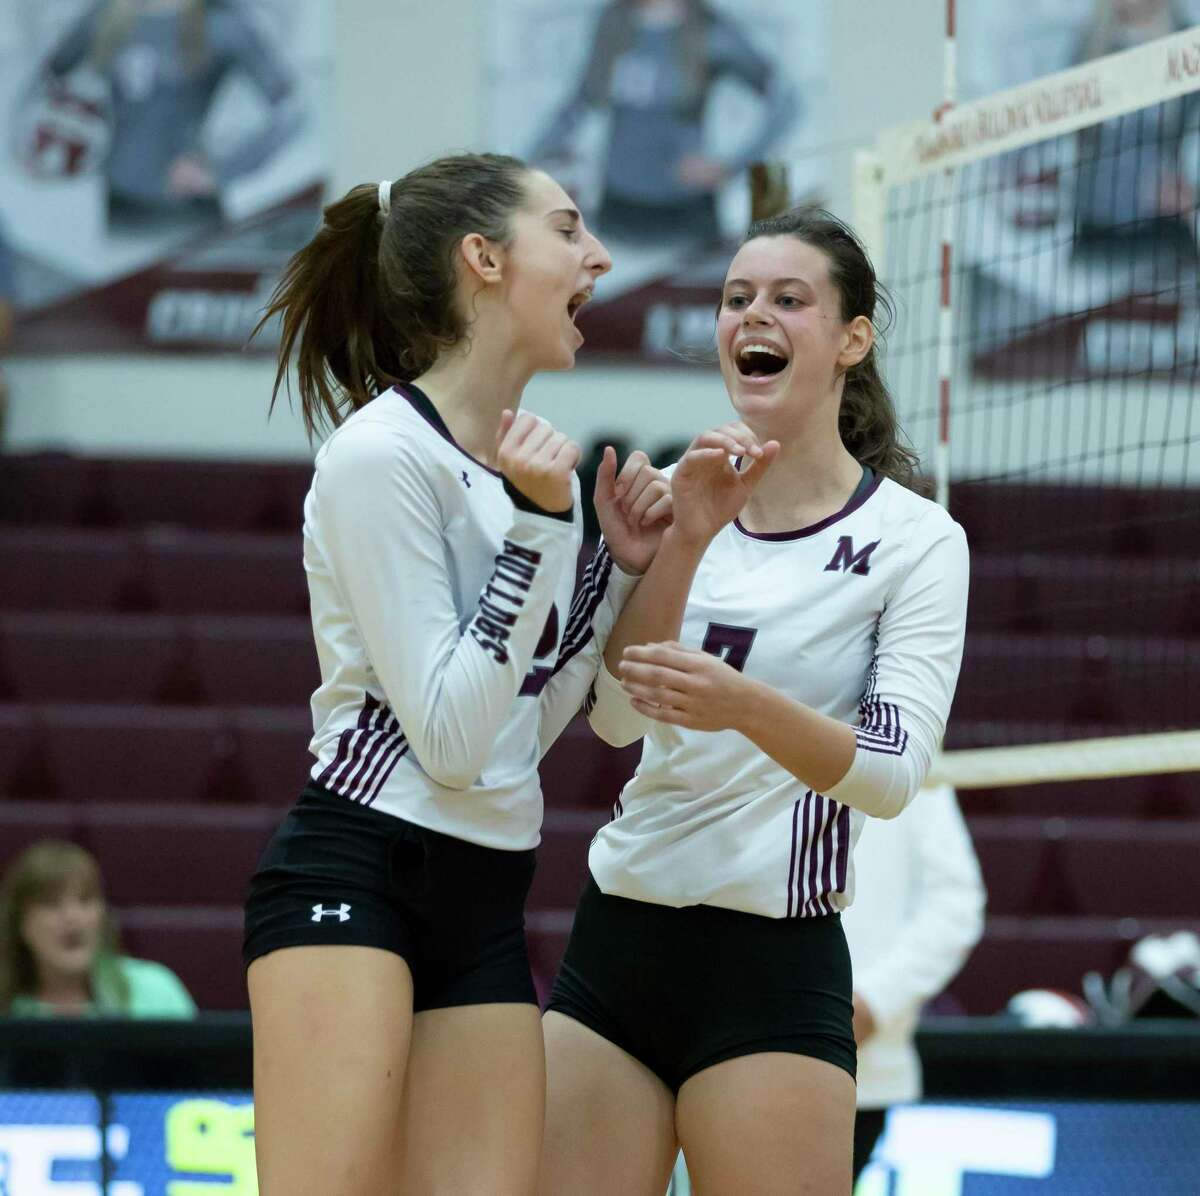 Magnolia setter Chloe Richards (2) and opposite hitter Marissa Moffatt (7) cheer after they score during the second set of a non-district volleyball match against Oak Ridge at Magnolia High School, Saturday, Sept. 19, 2020.